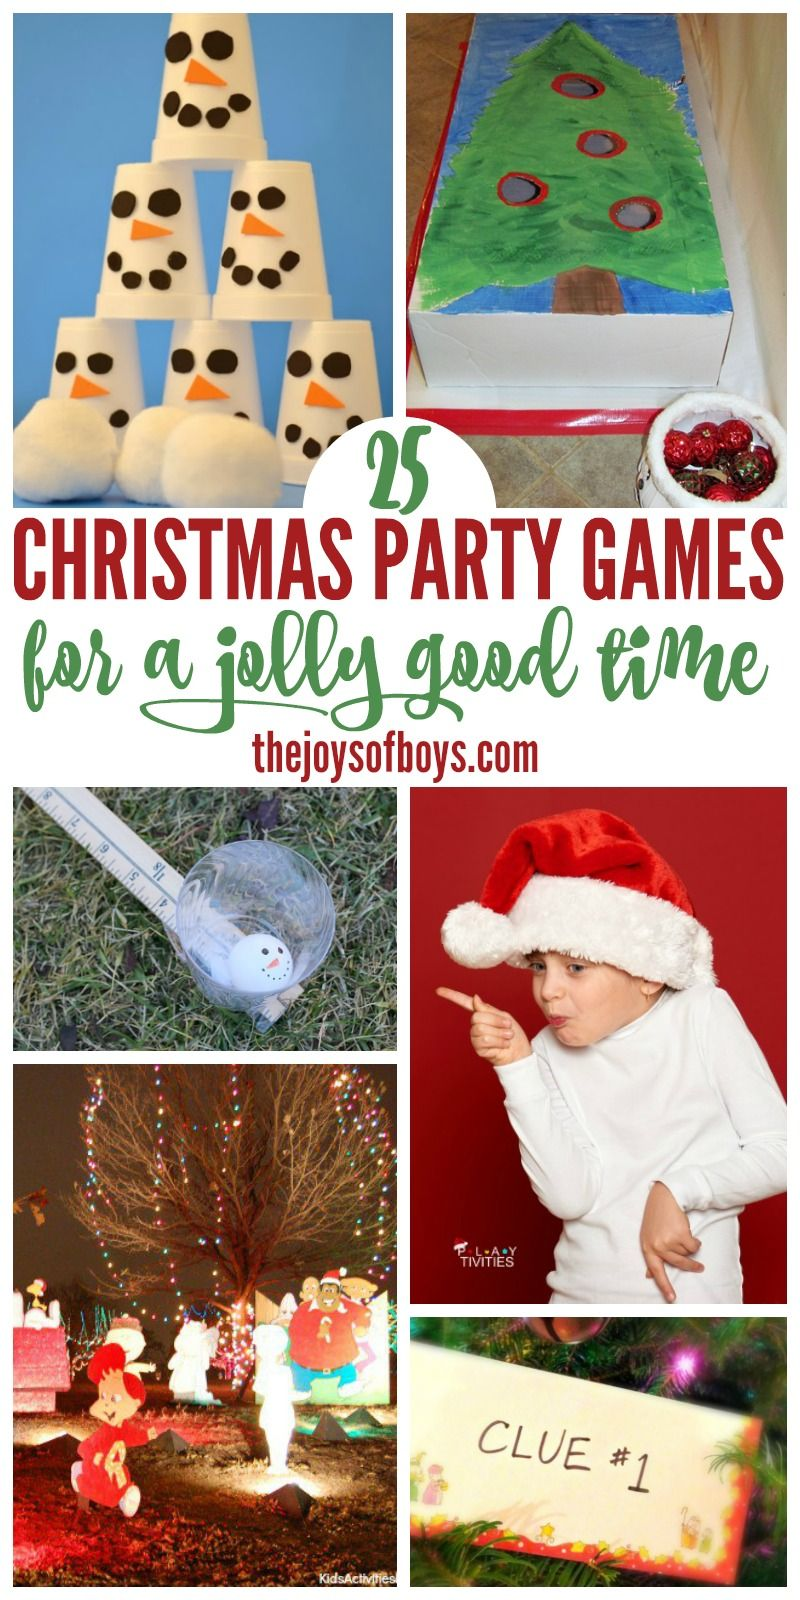 25 Christmas Party Games Kids and Adults Will Love | Christmas 2015 ...